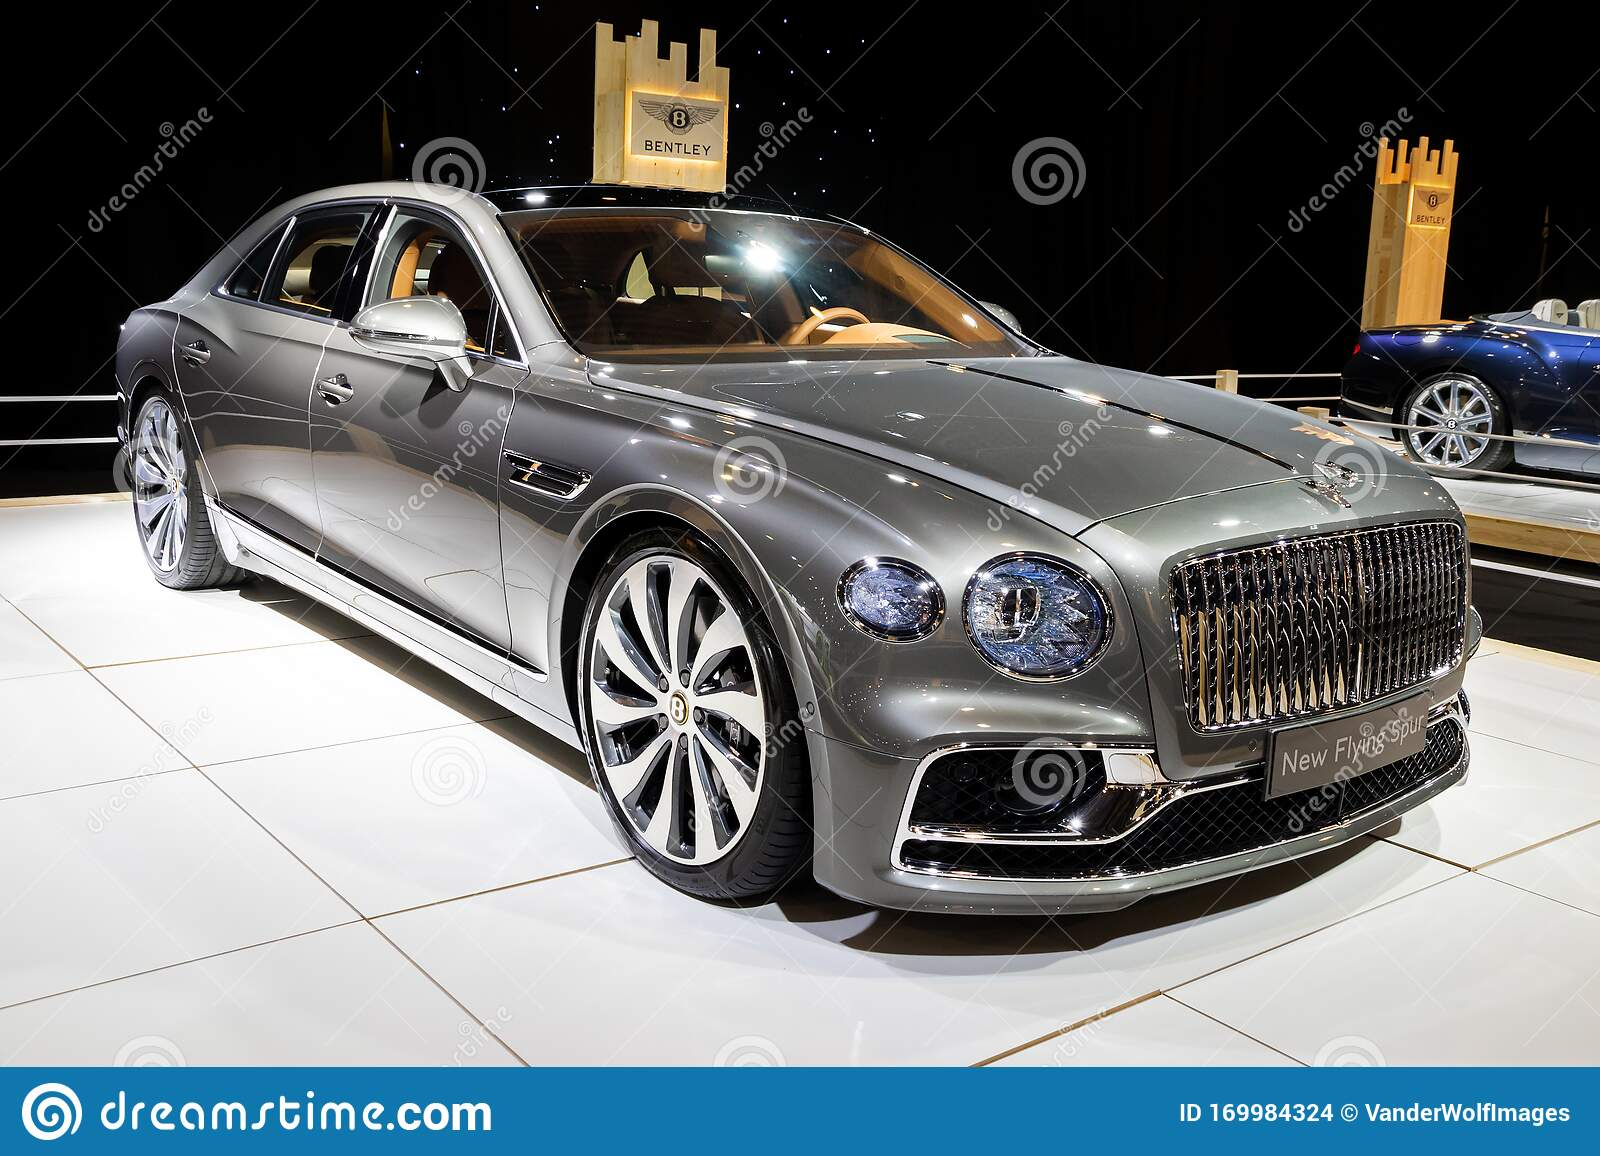 Brussels Jan 9 2020 New Bentley Flying Spur Luxury Car Model Showcased At The Brussels Autosalon 2020 Motor Show Editorial Stock Image Image Of Performance Auto 169984324